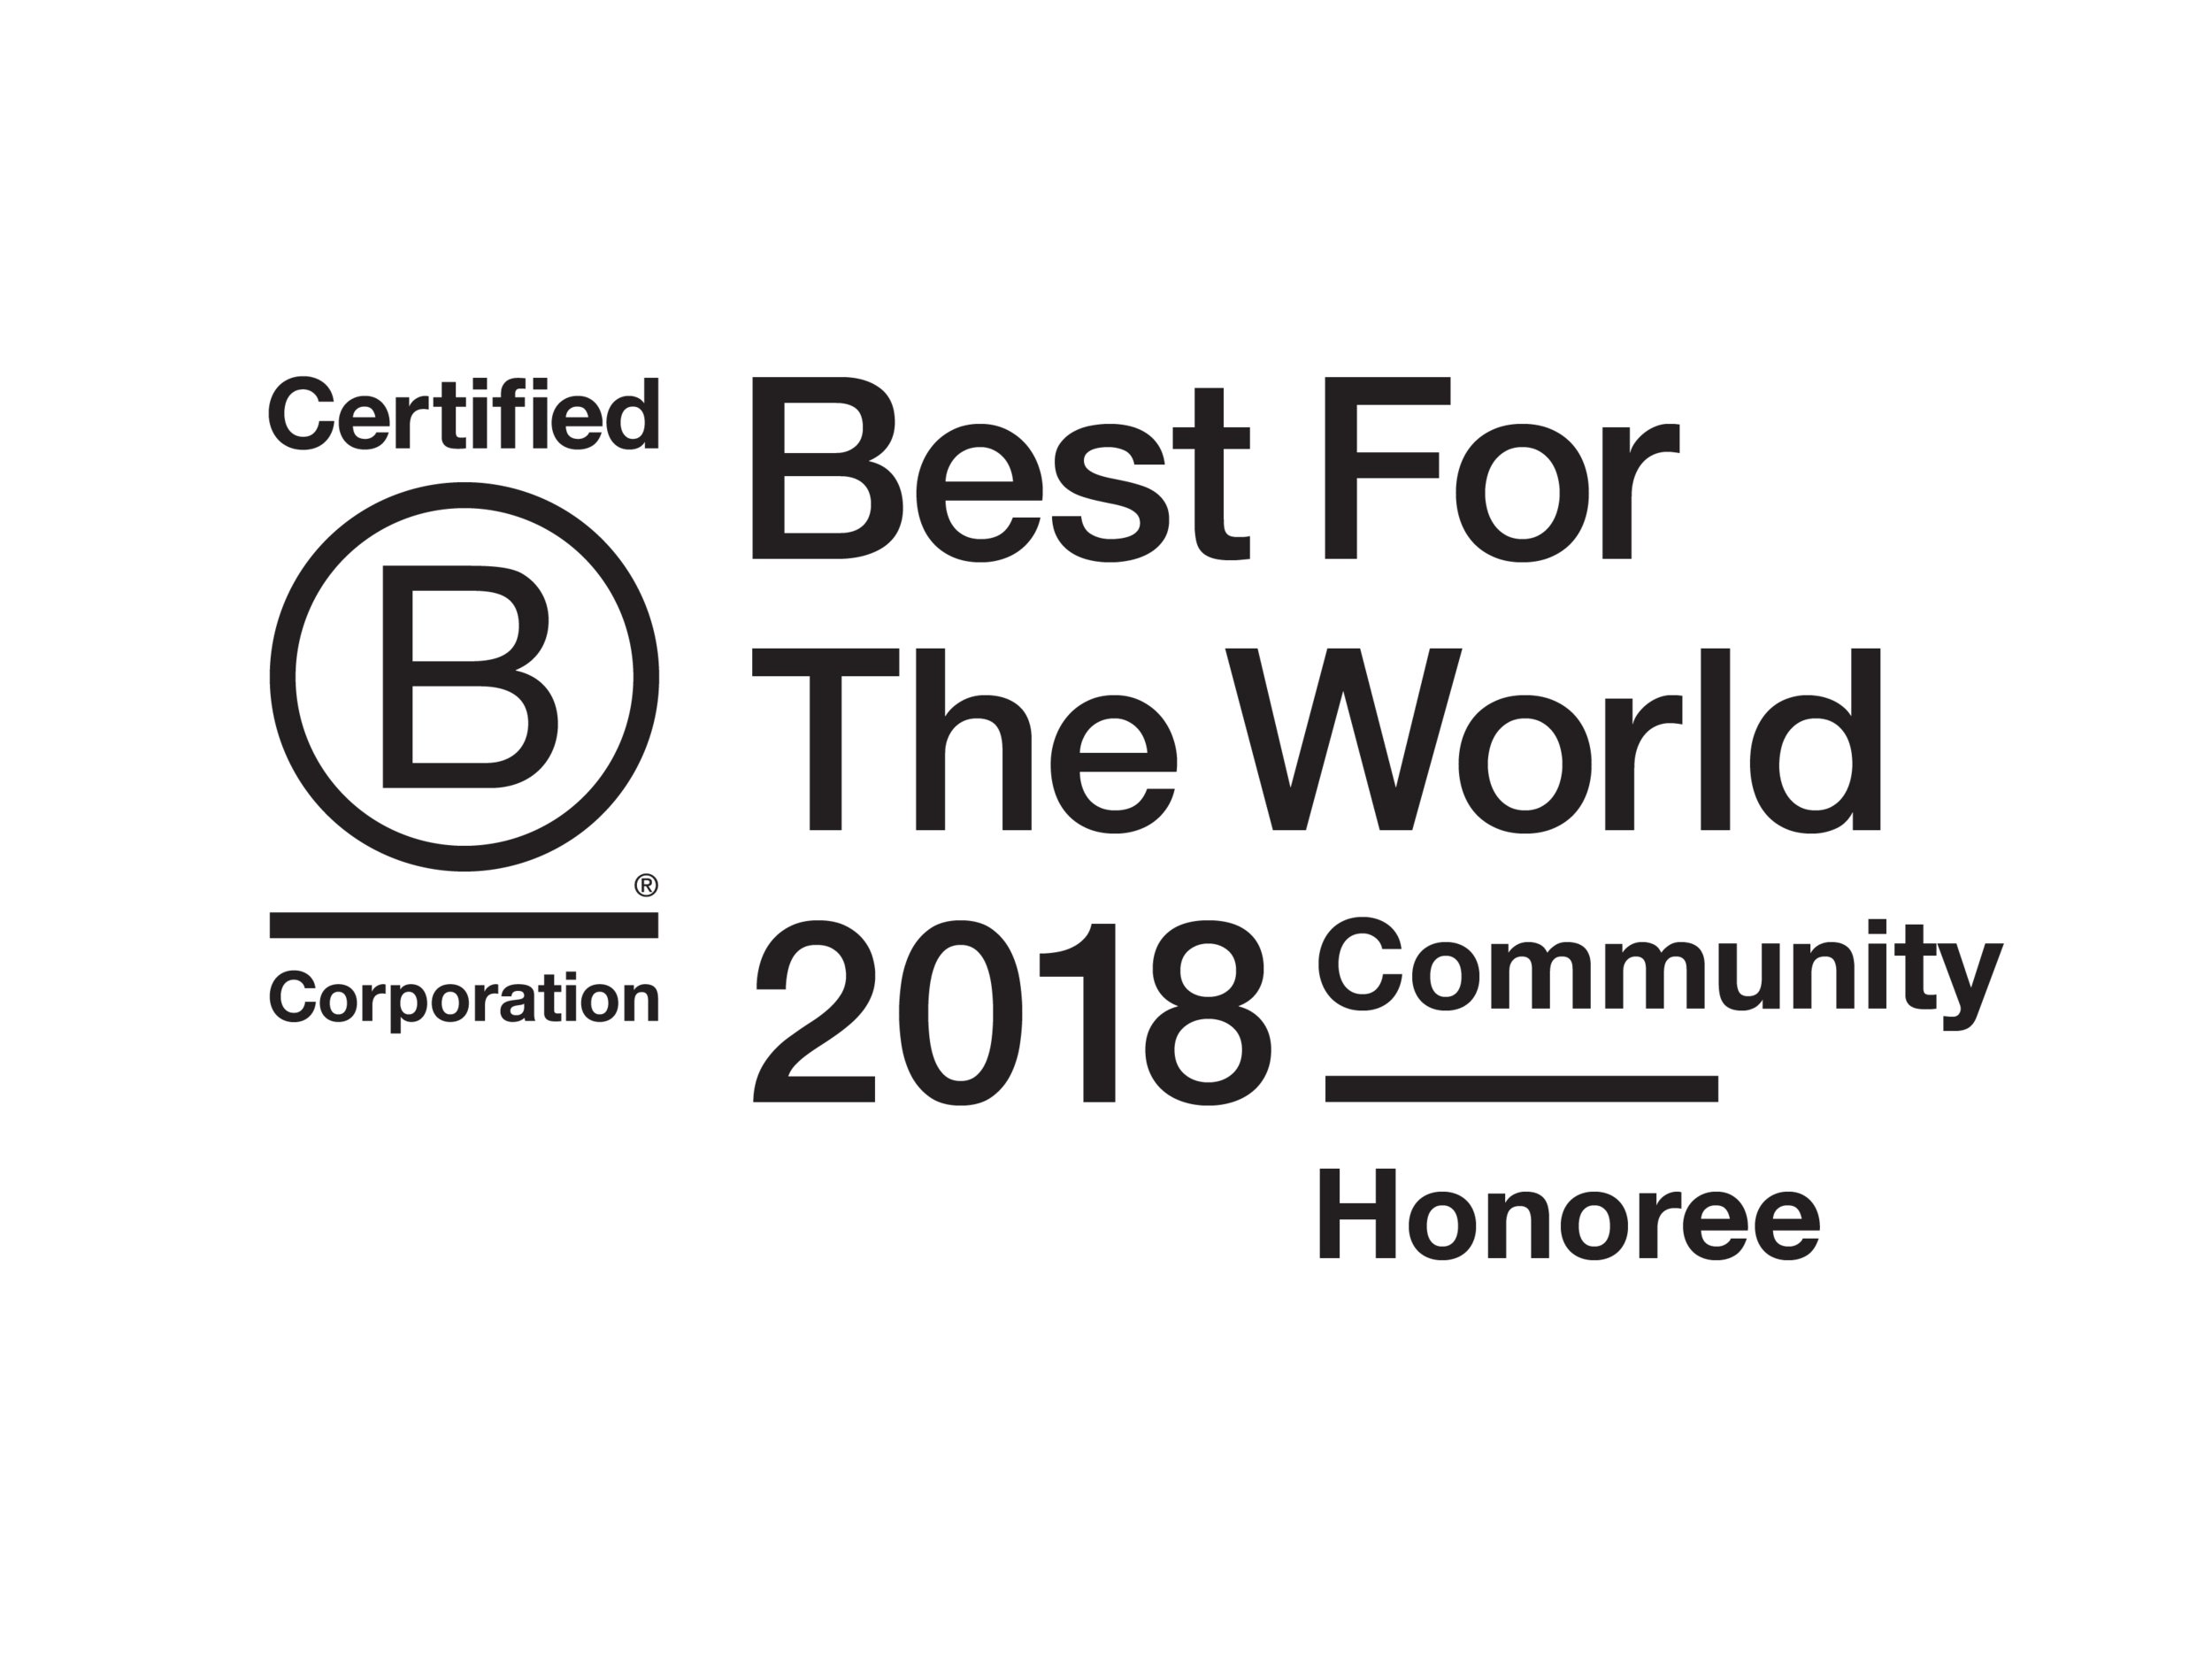 B Corporation Best for the World 2018 Community Honoree